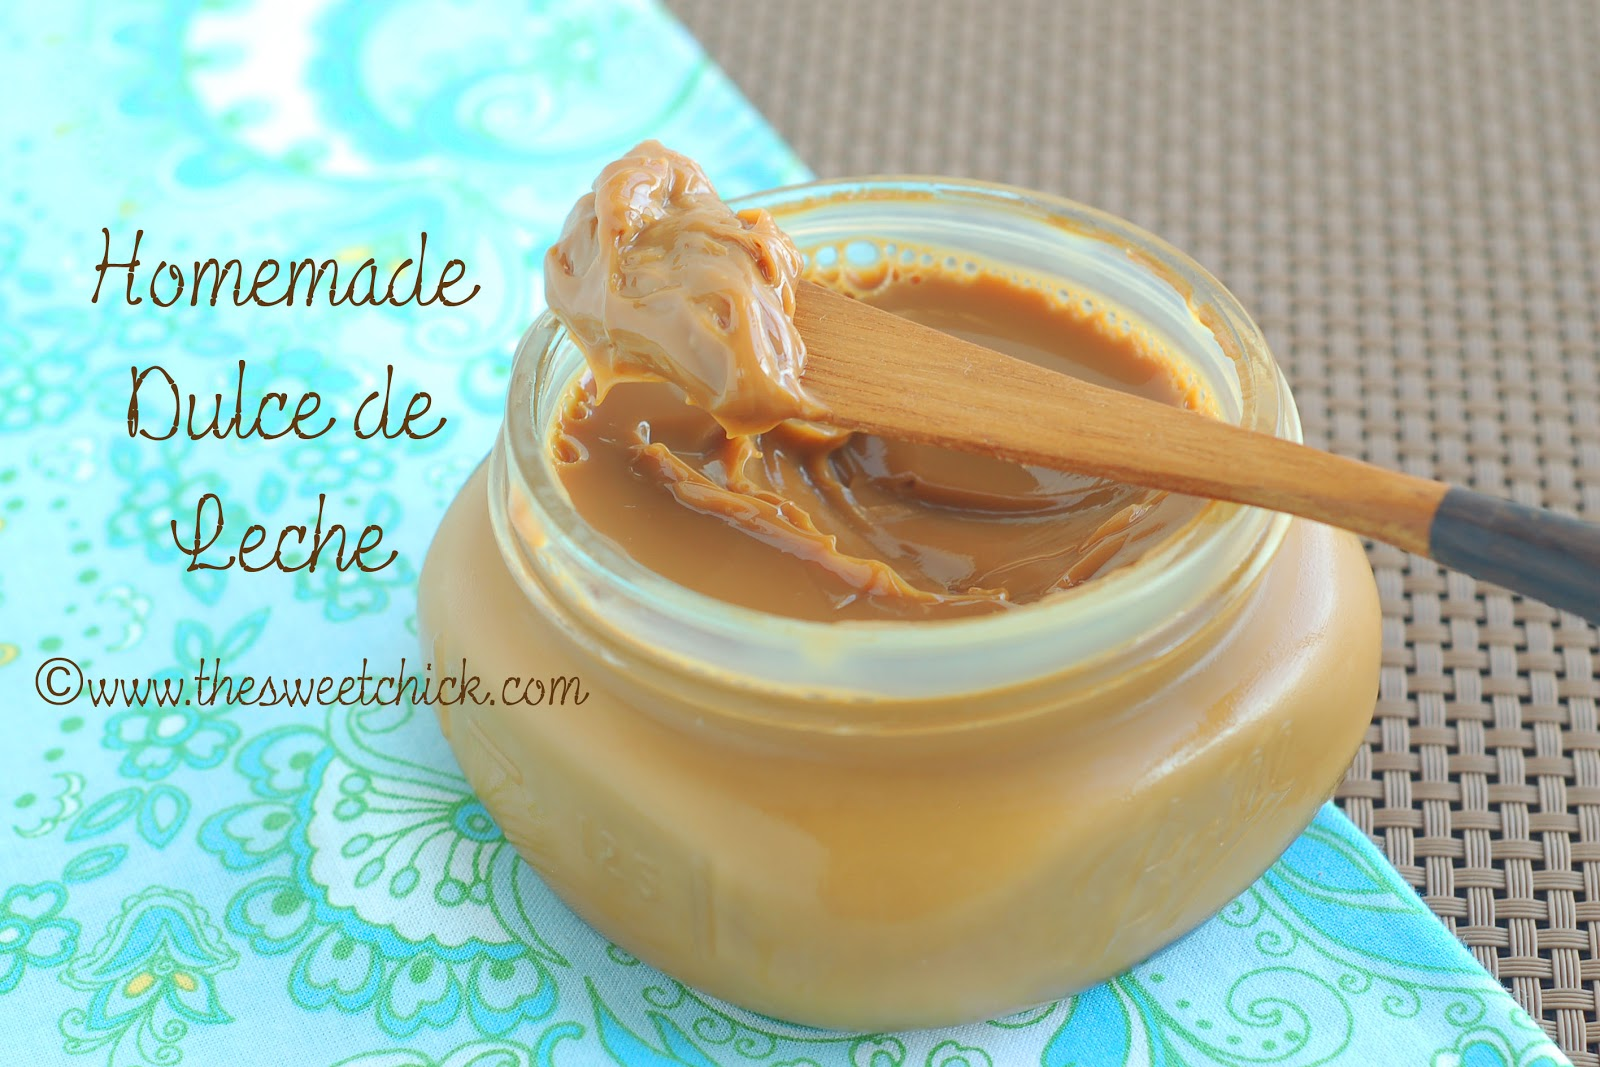 The Sweet Chick: Homemade Dulce de Leche Revisited